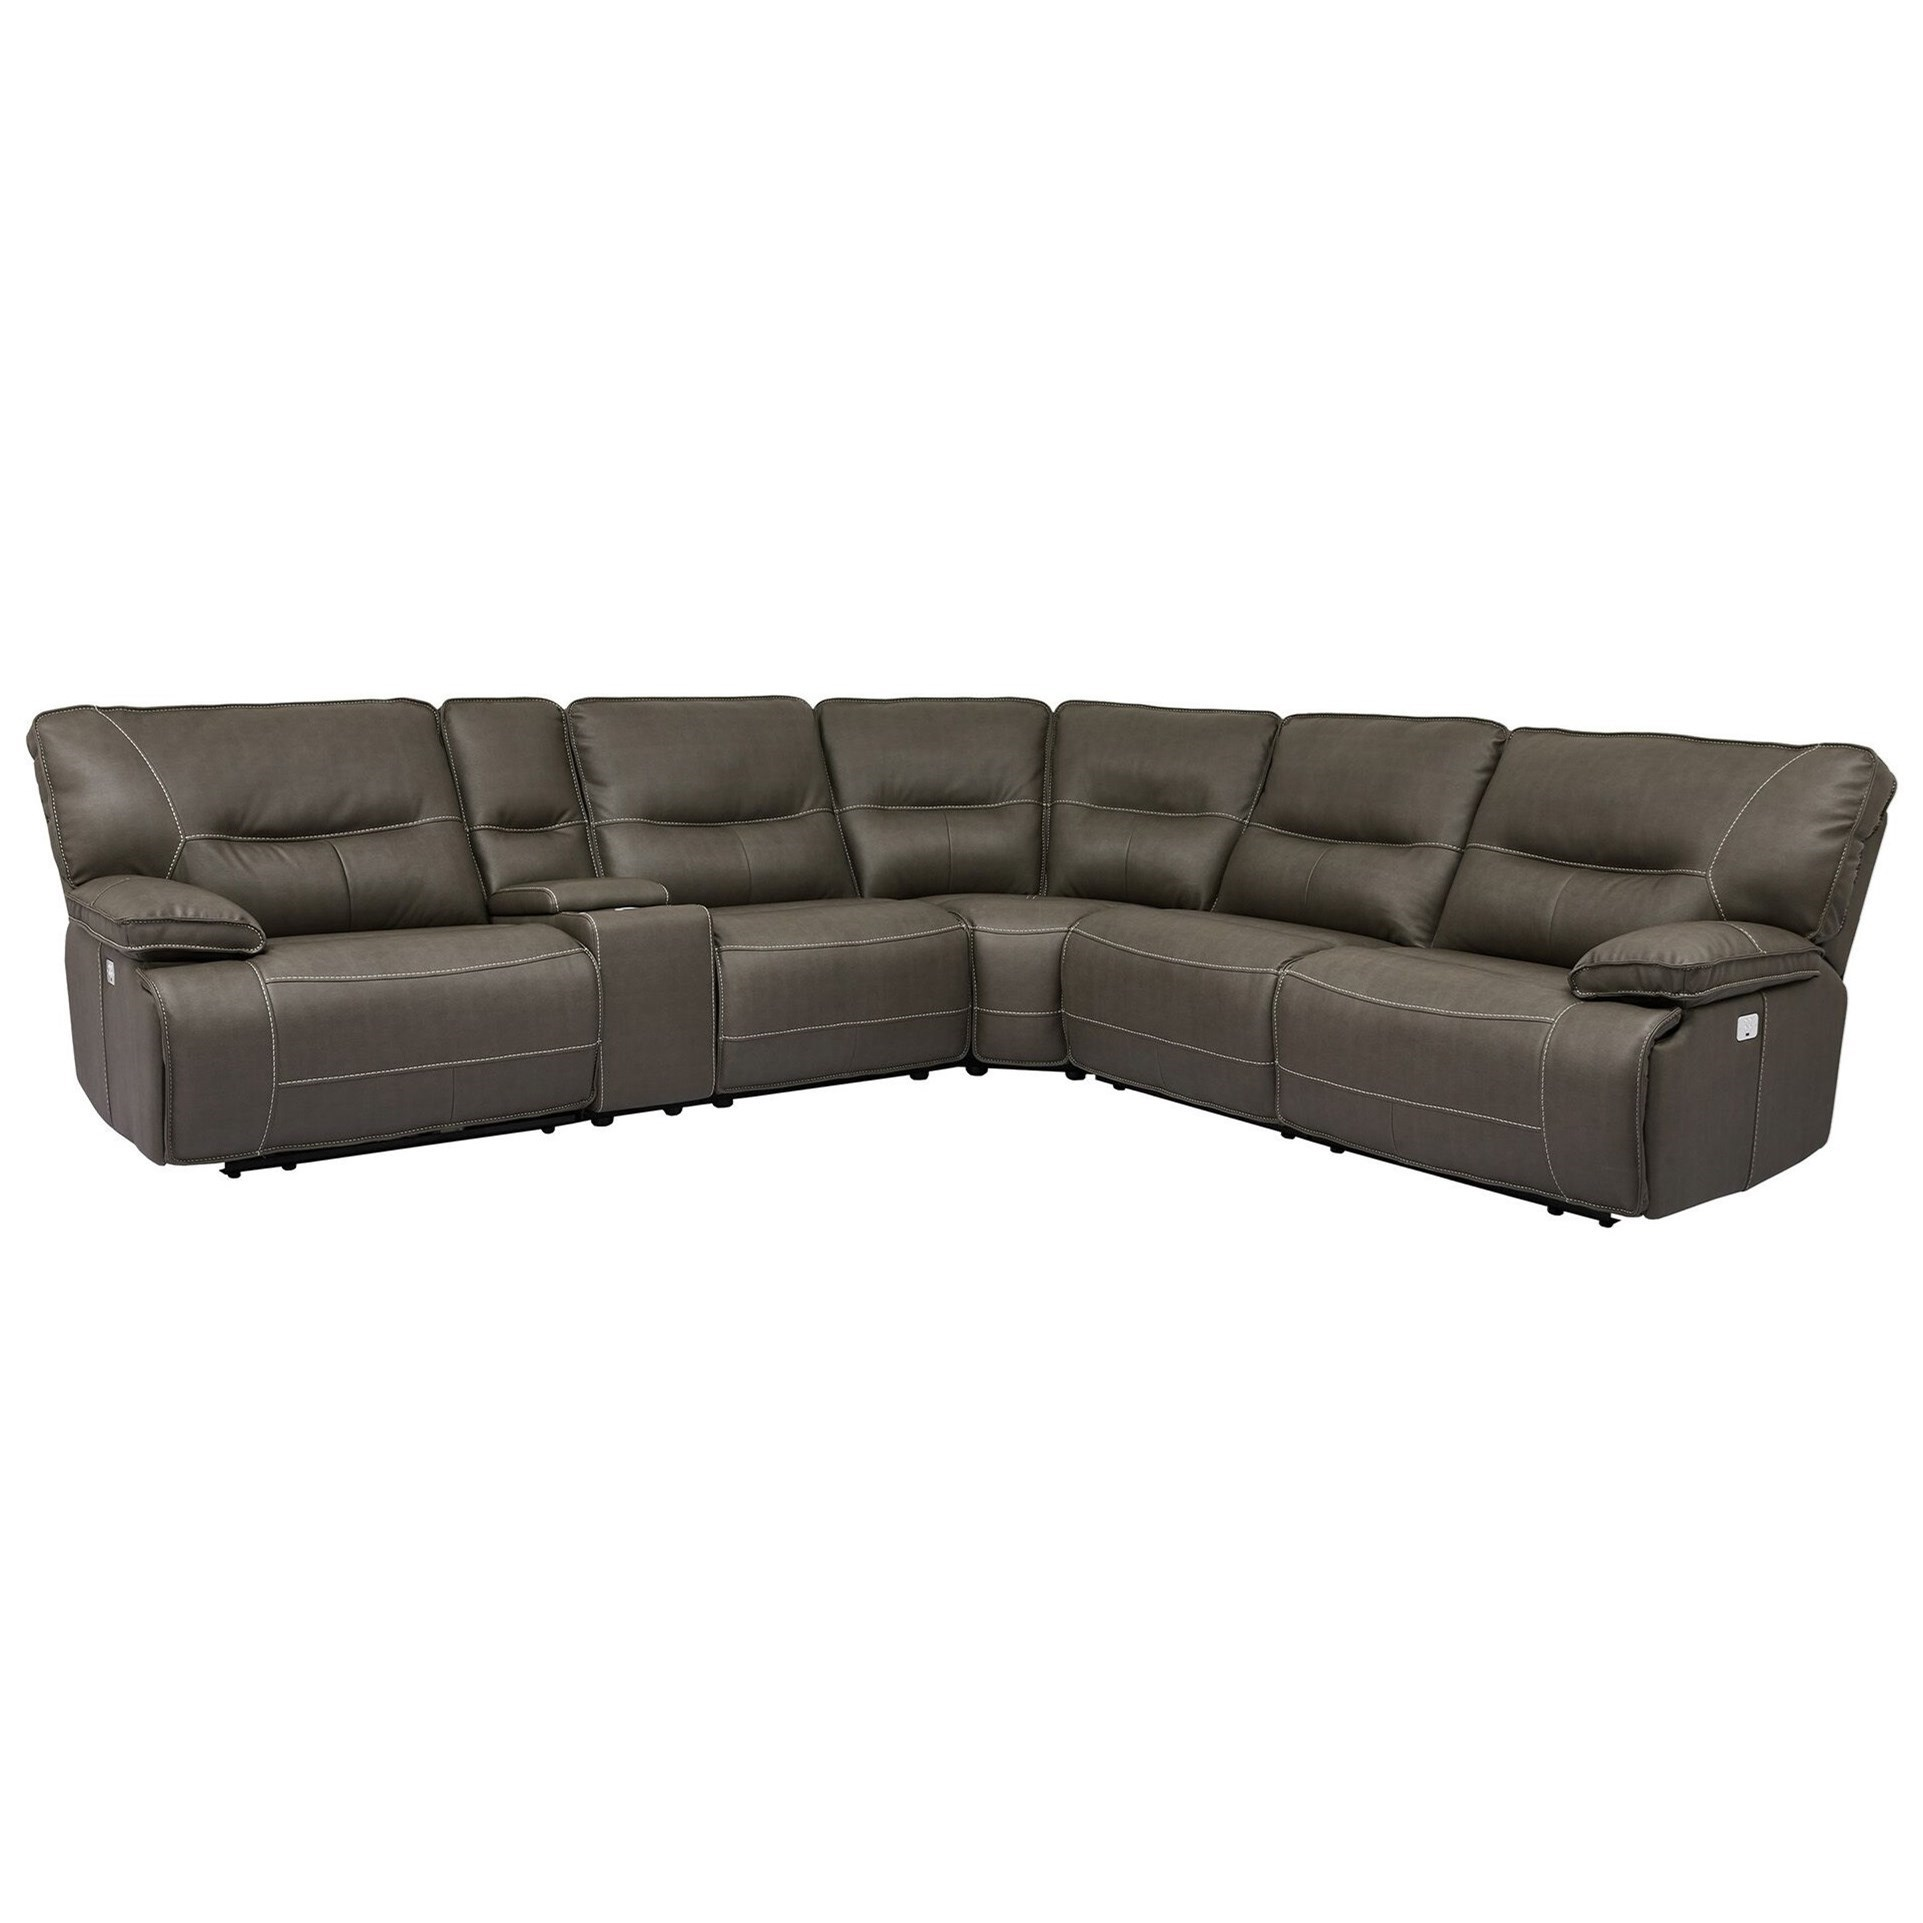 Parker Living Spartacus Reclining Sectional With Power Headrests And USB  Ports